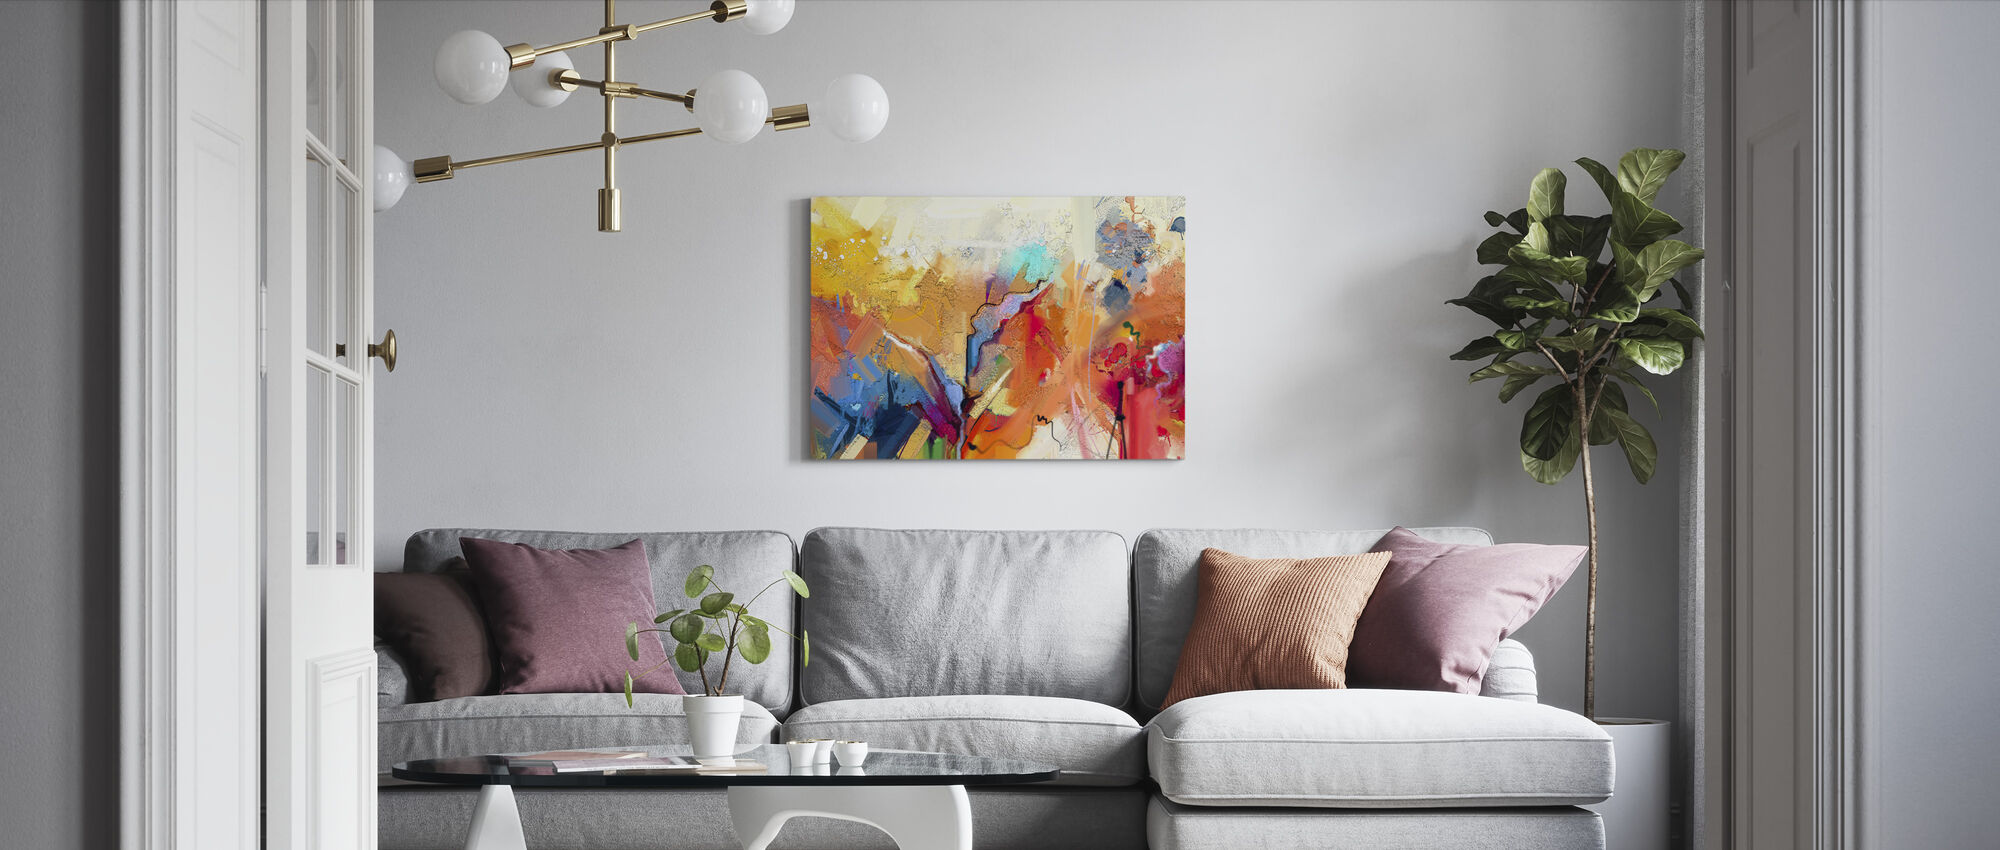 Colorful Abstract Painting - Canvas print - Living Room